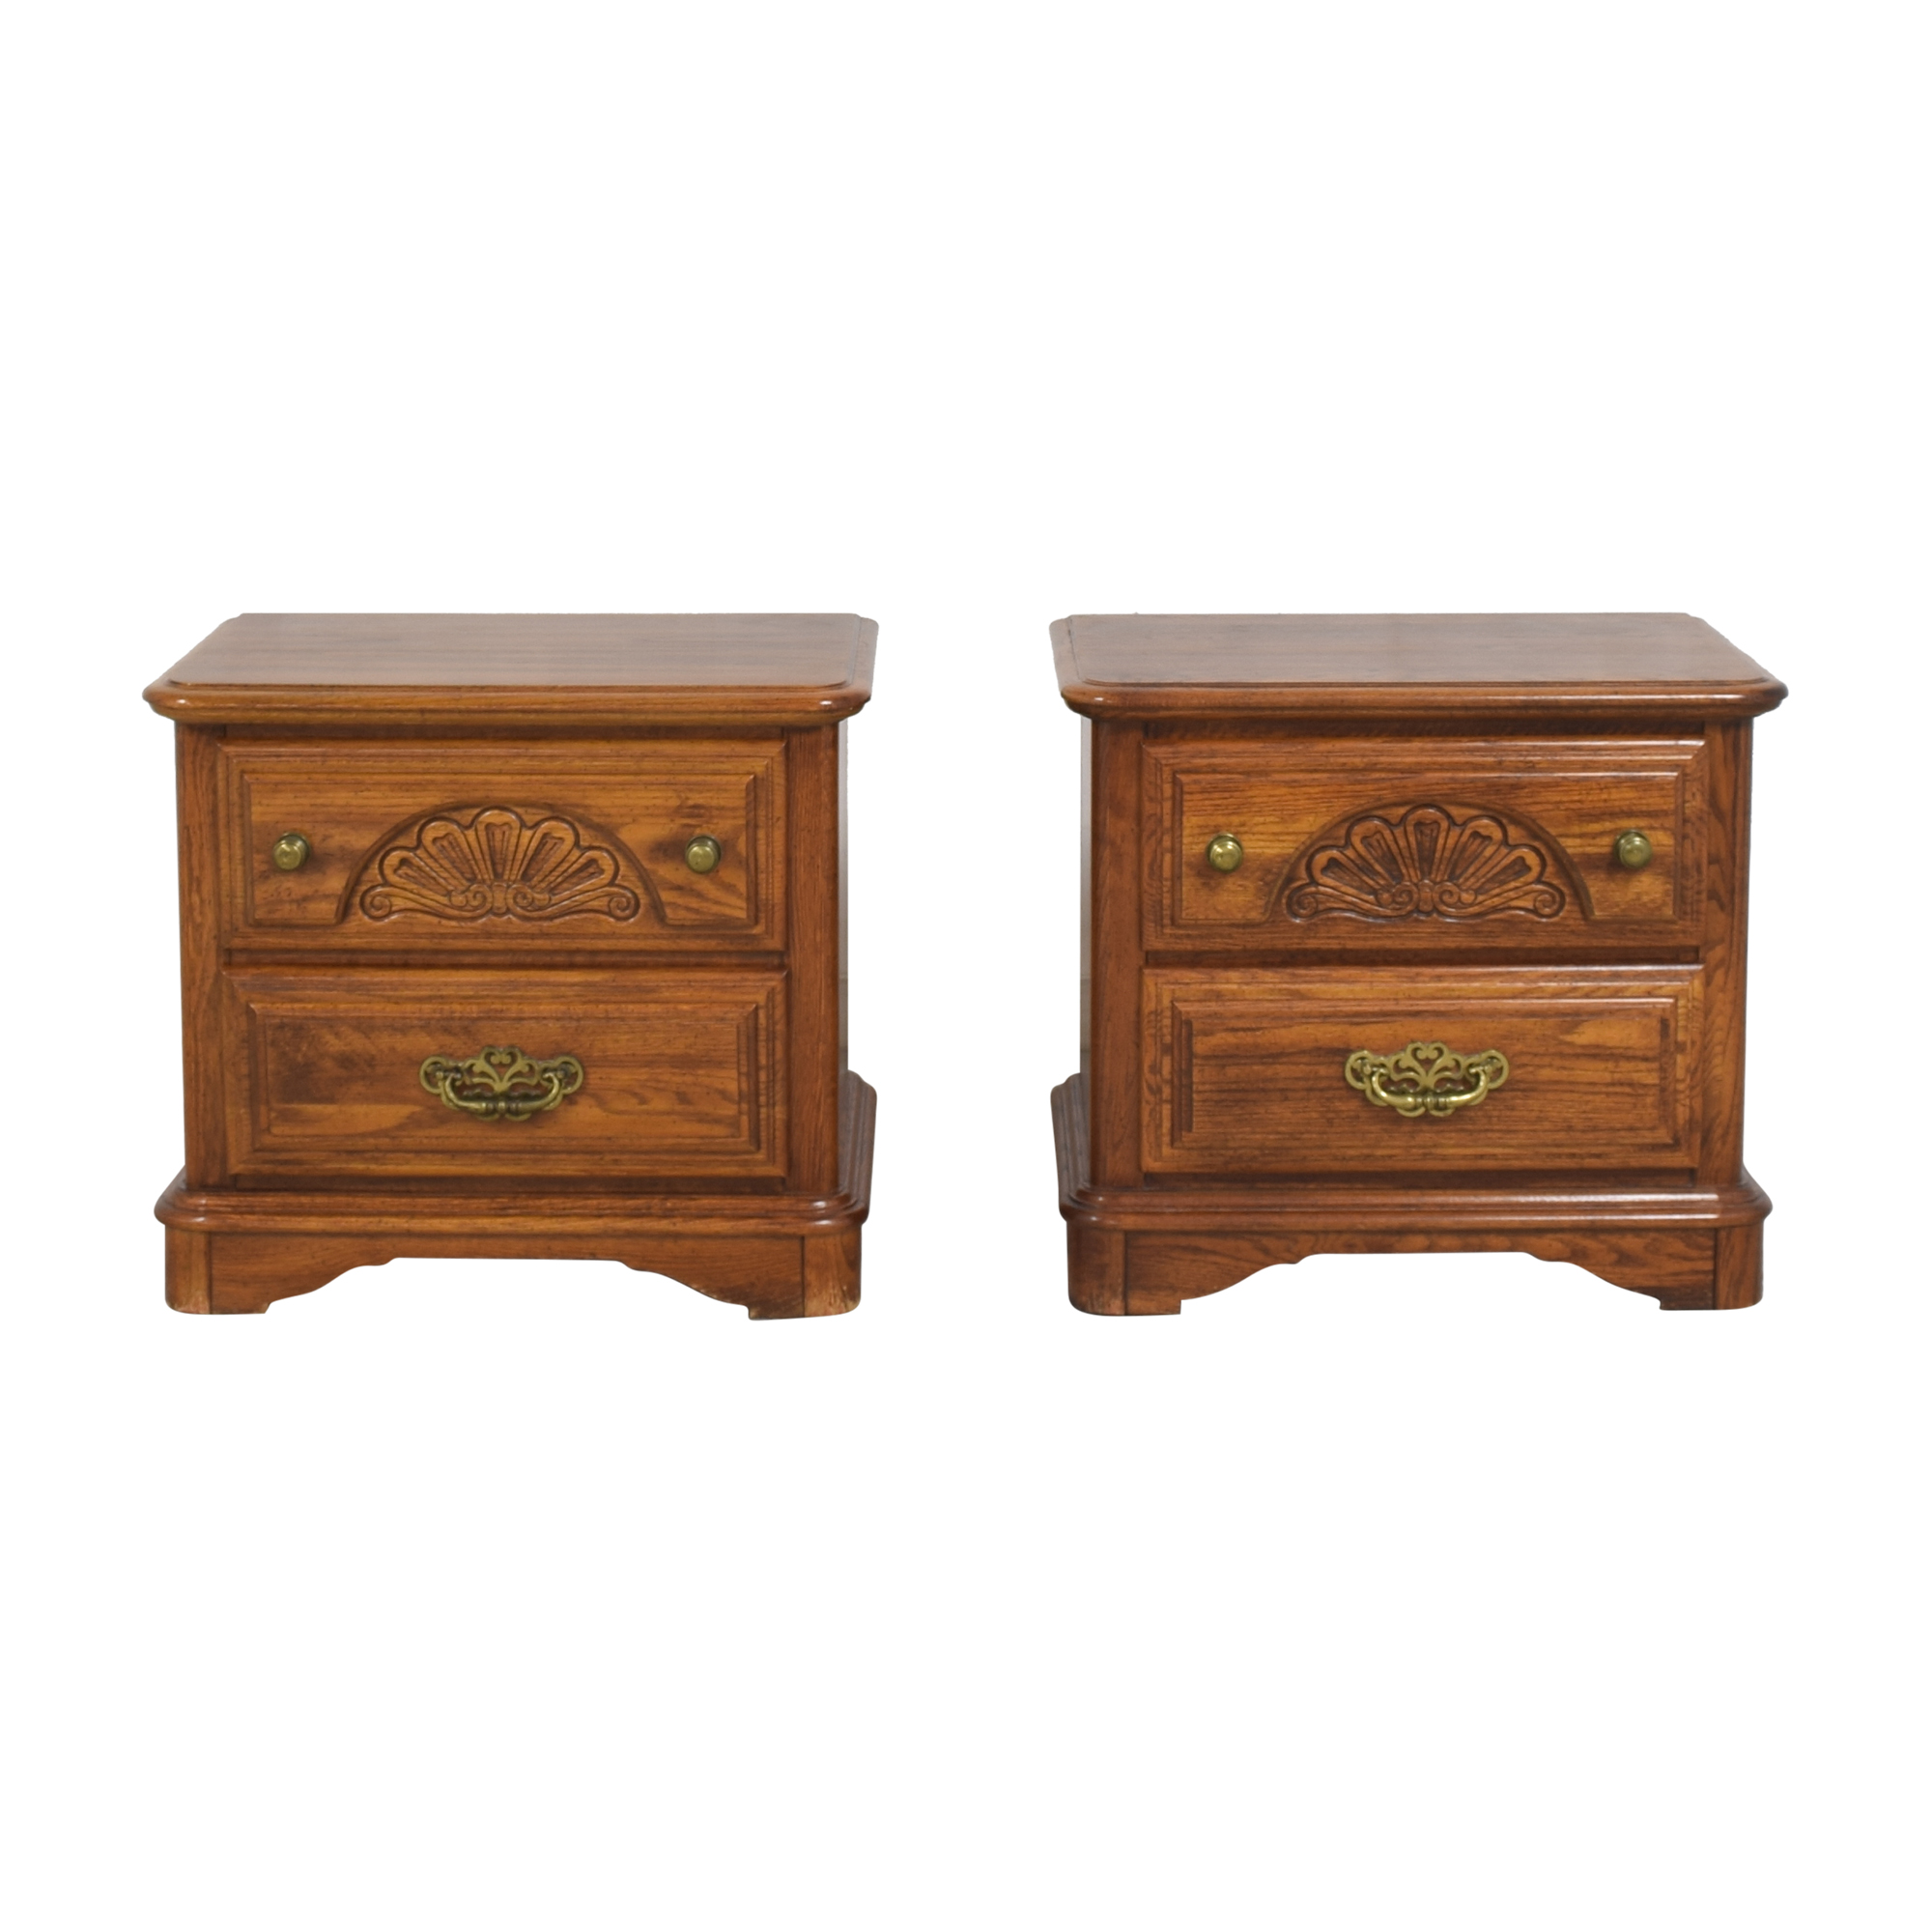 Sumter Cabinet Co. Sumter Cabinet Co. Two Drawer Nightstands End Tables